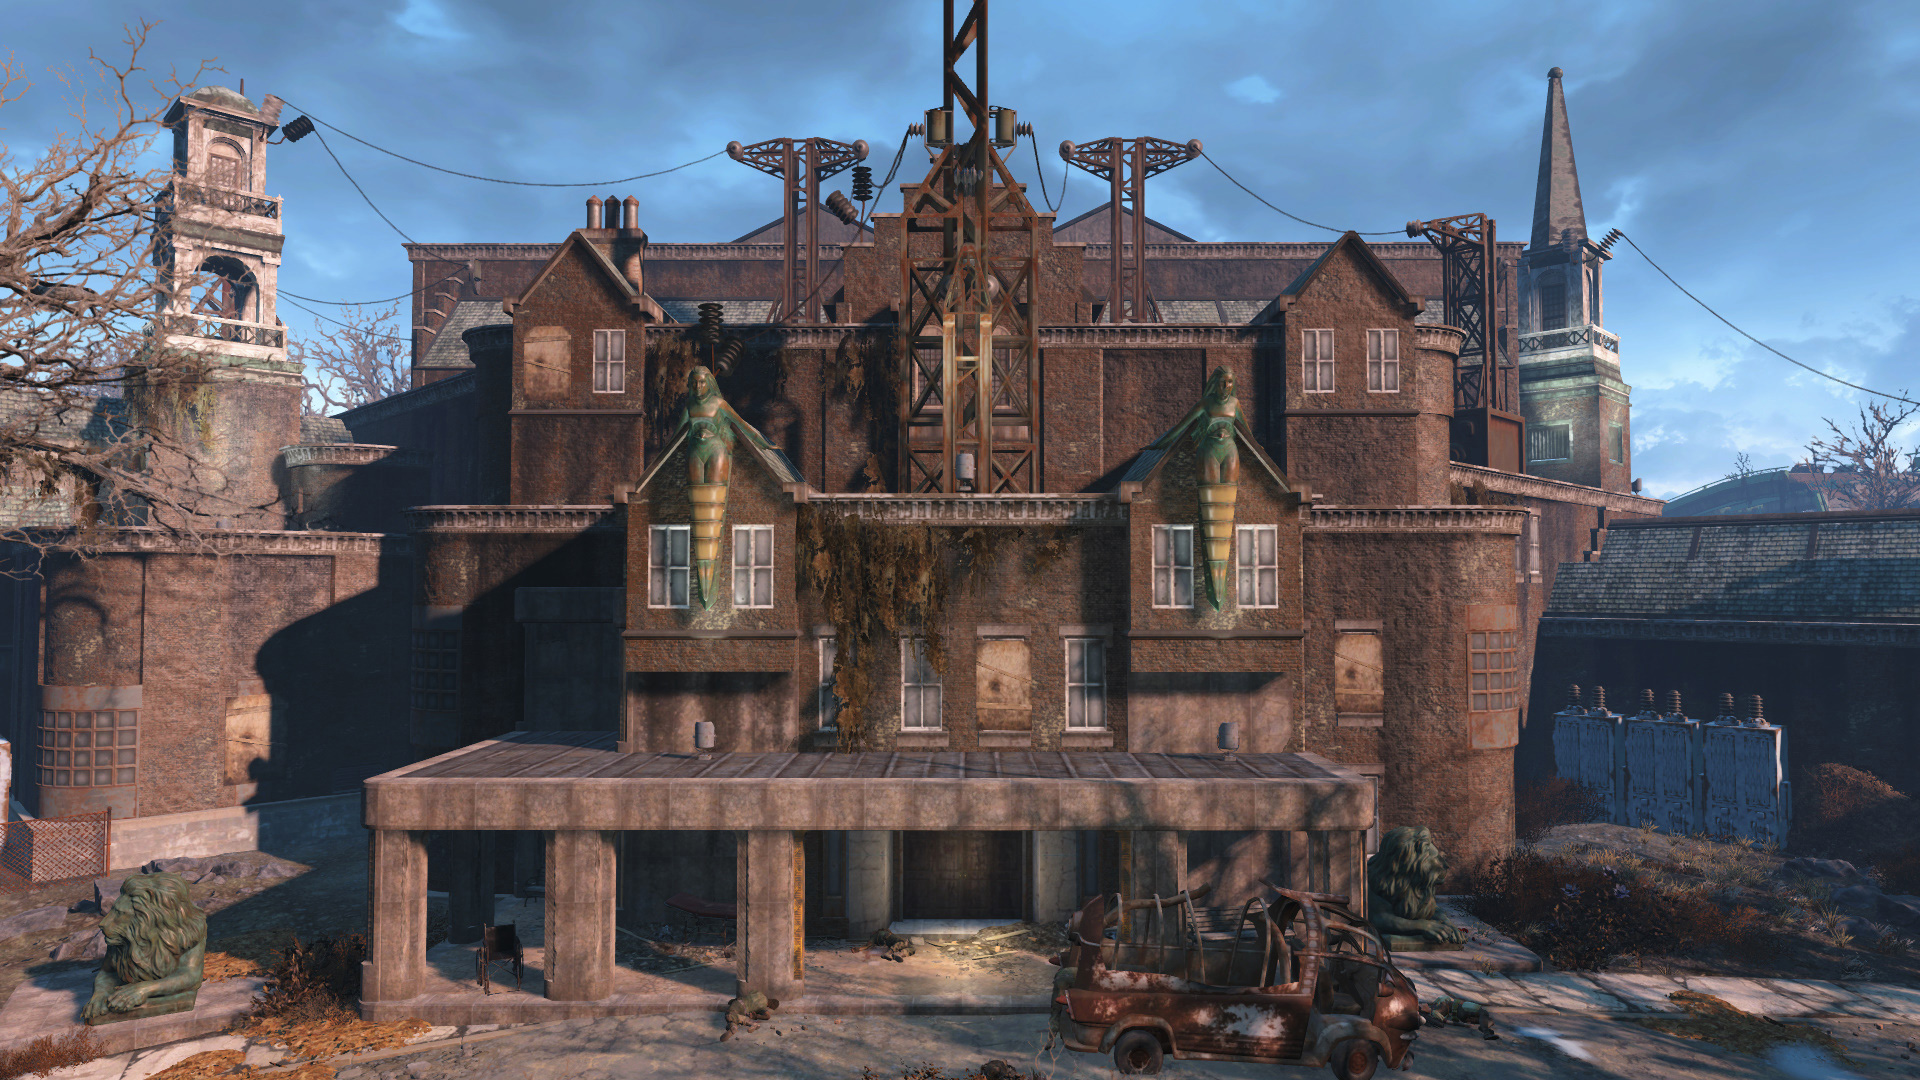 How to get inside parsons state insane asylum in fallout 4 for Fallout 4 bedroom ideas